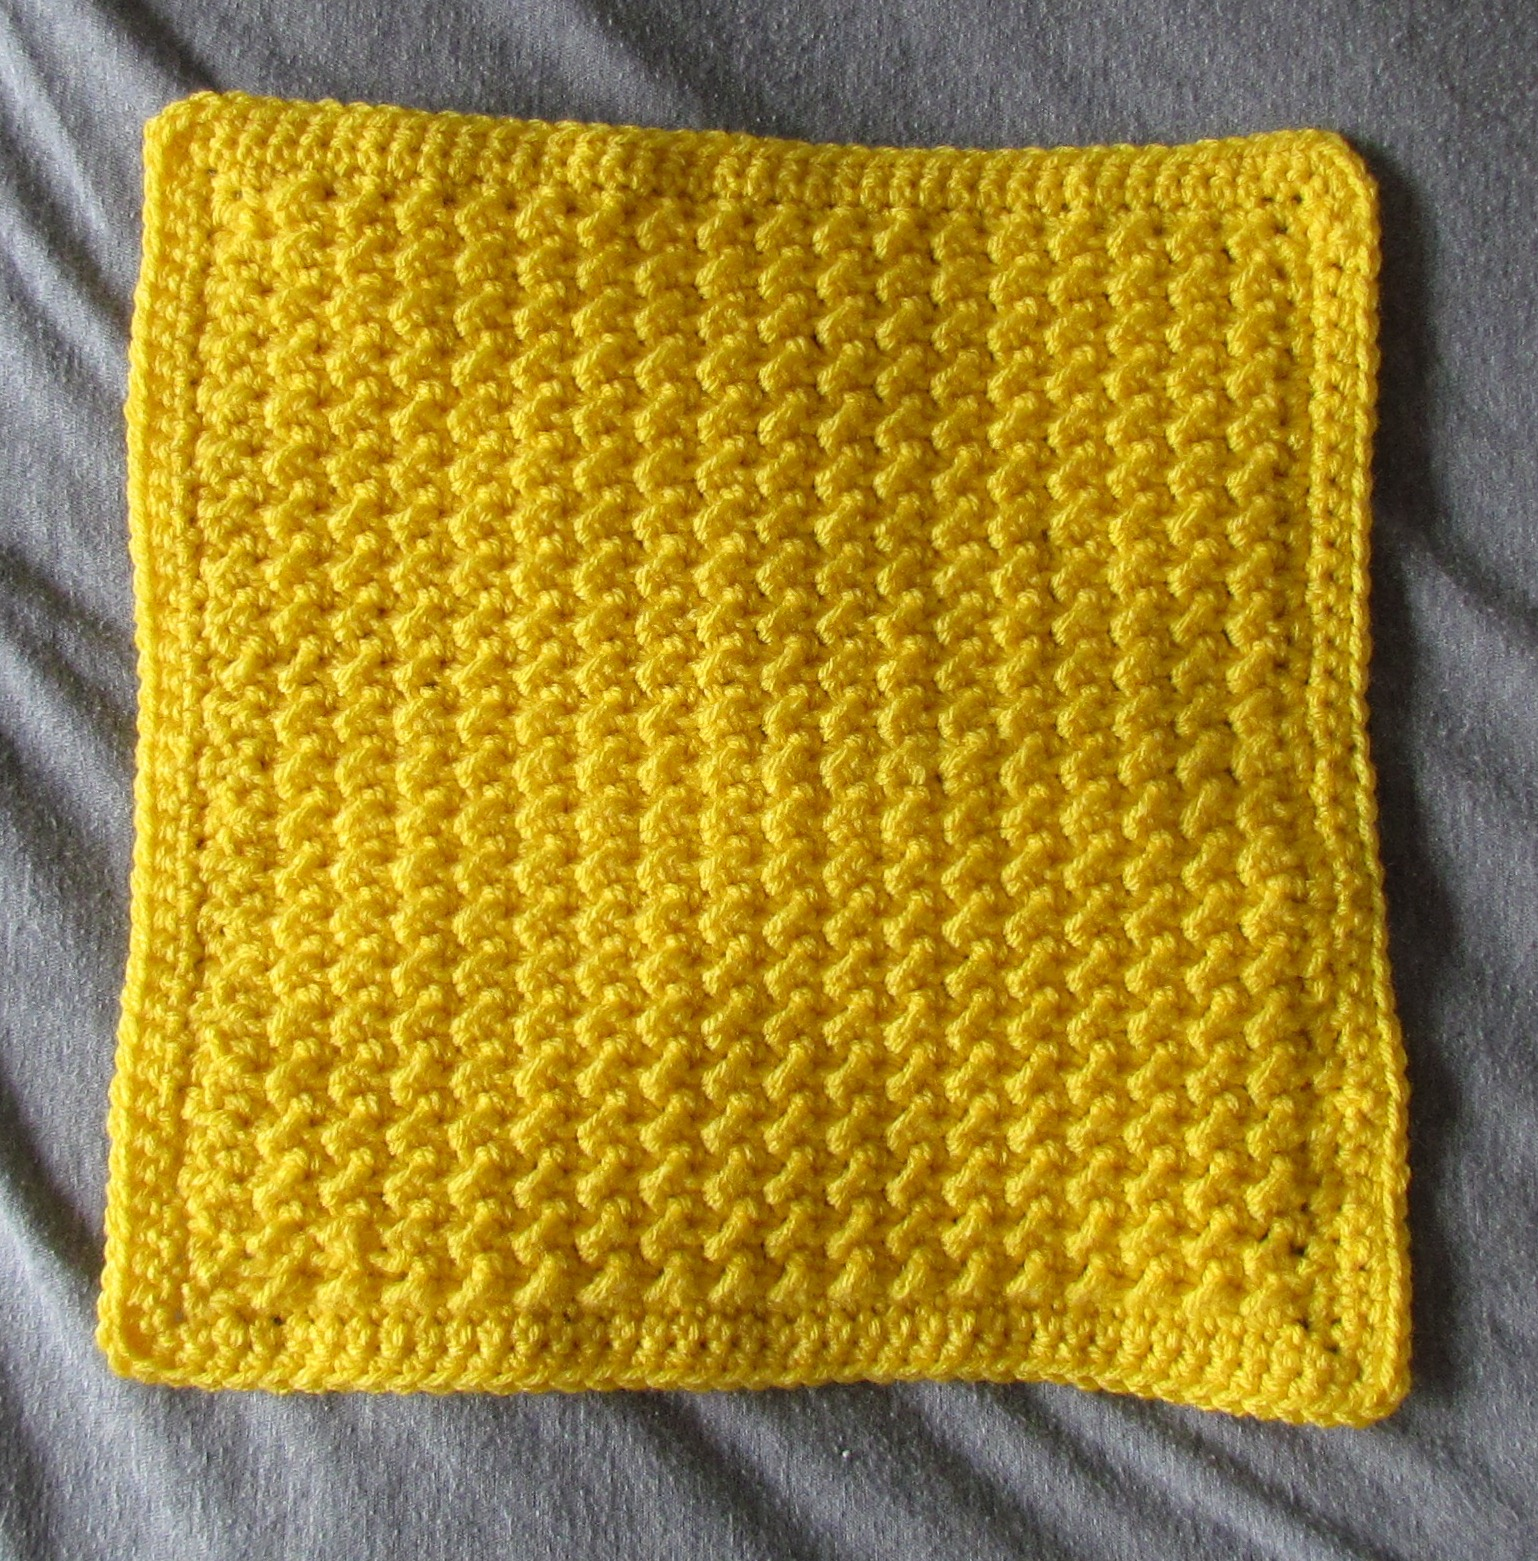 Crochet: Use pattern for large afghan to make baby afghan, size